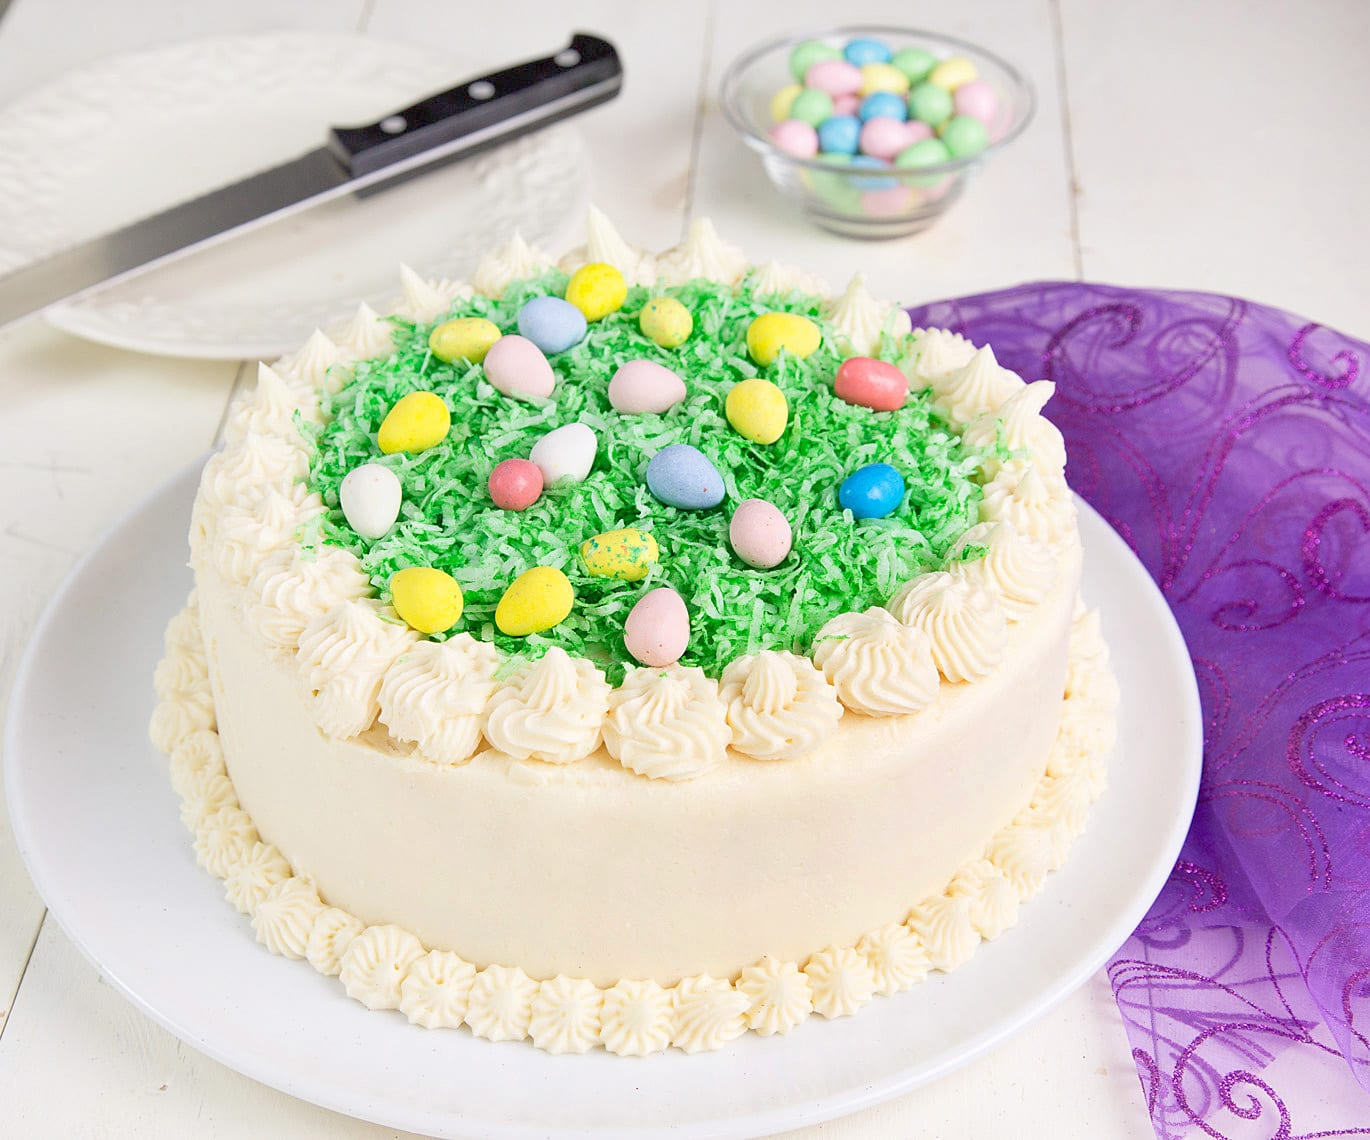 My Coconut Easter Cake for your holiday celebration